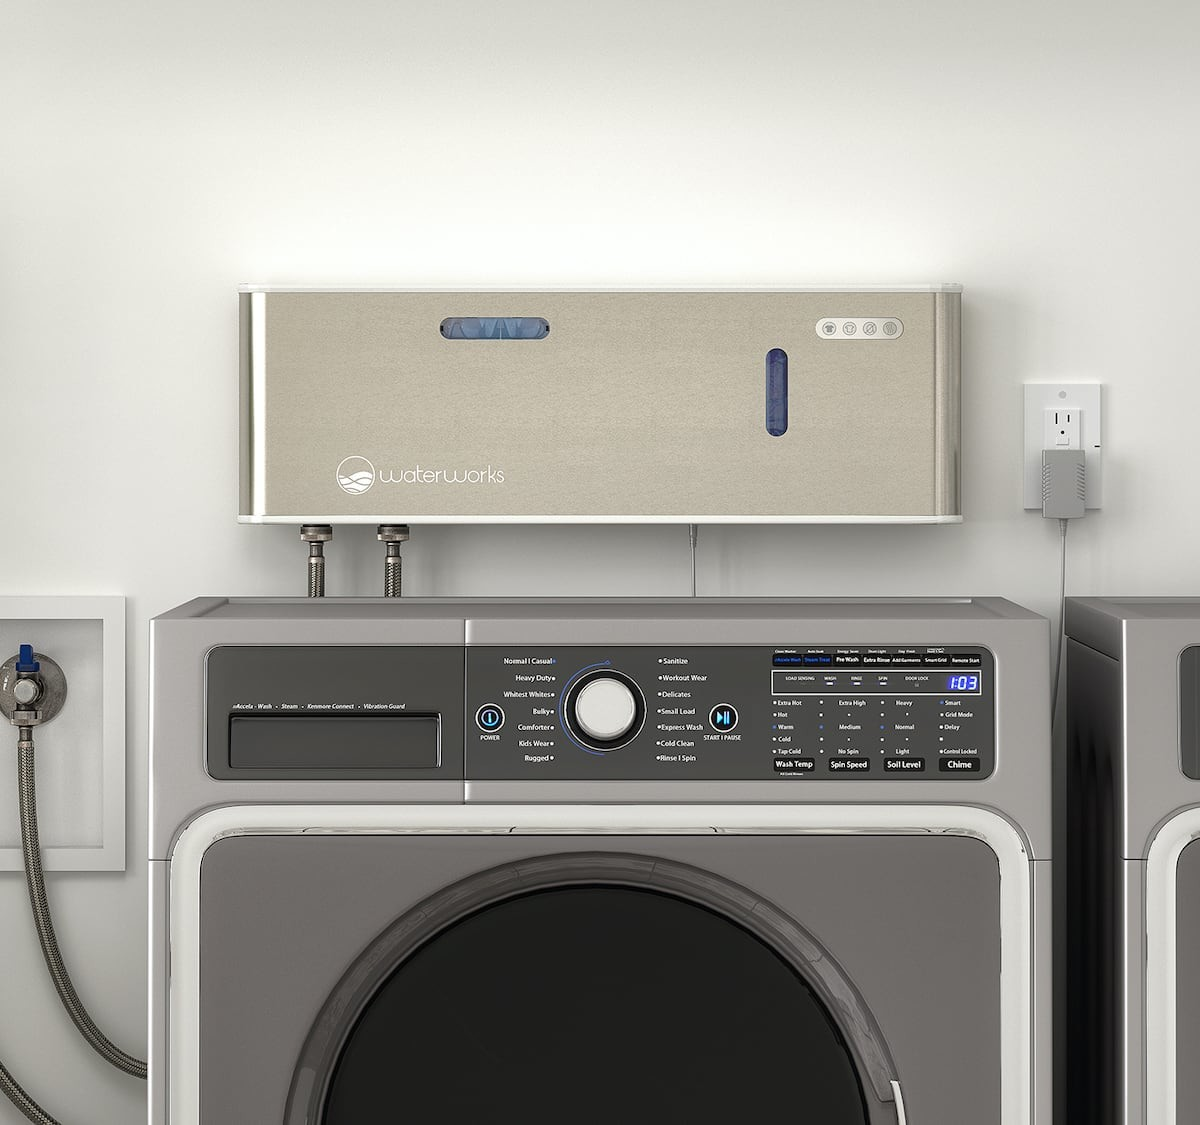 o3waterworks smart laundry system for detergent-free cleaning uses the power of Aqueous Ozone